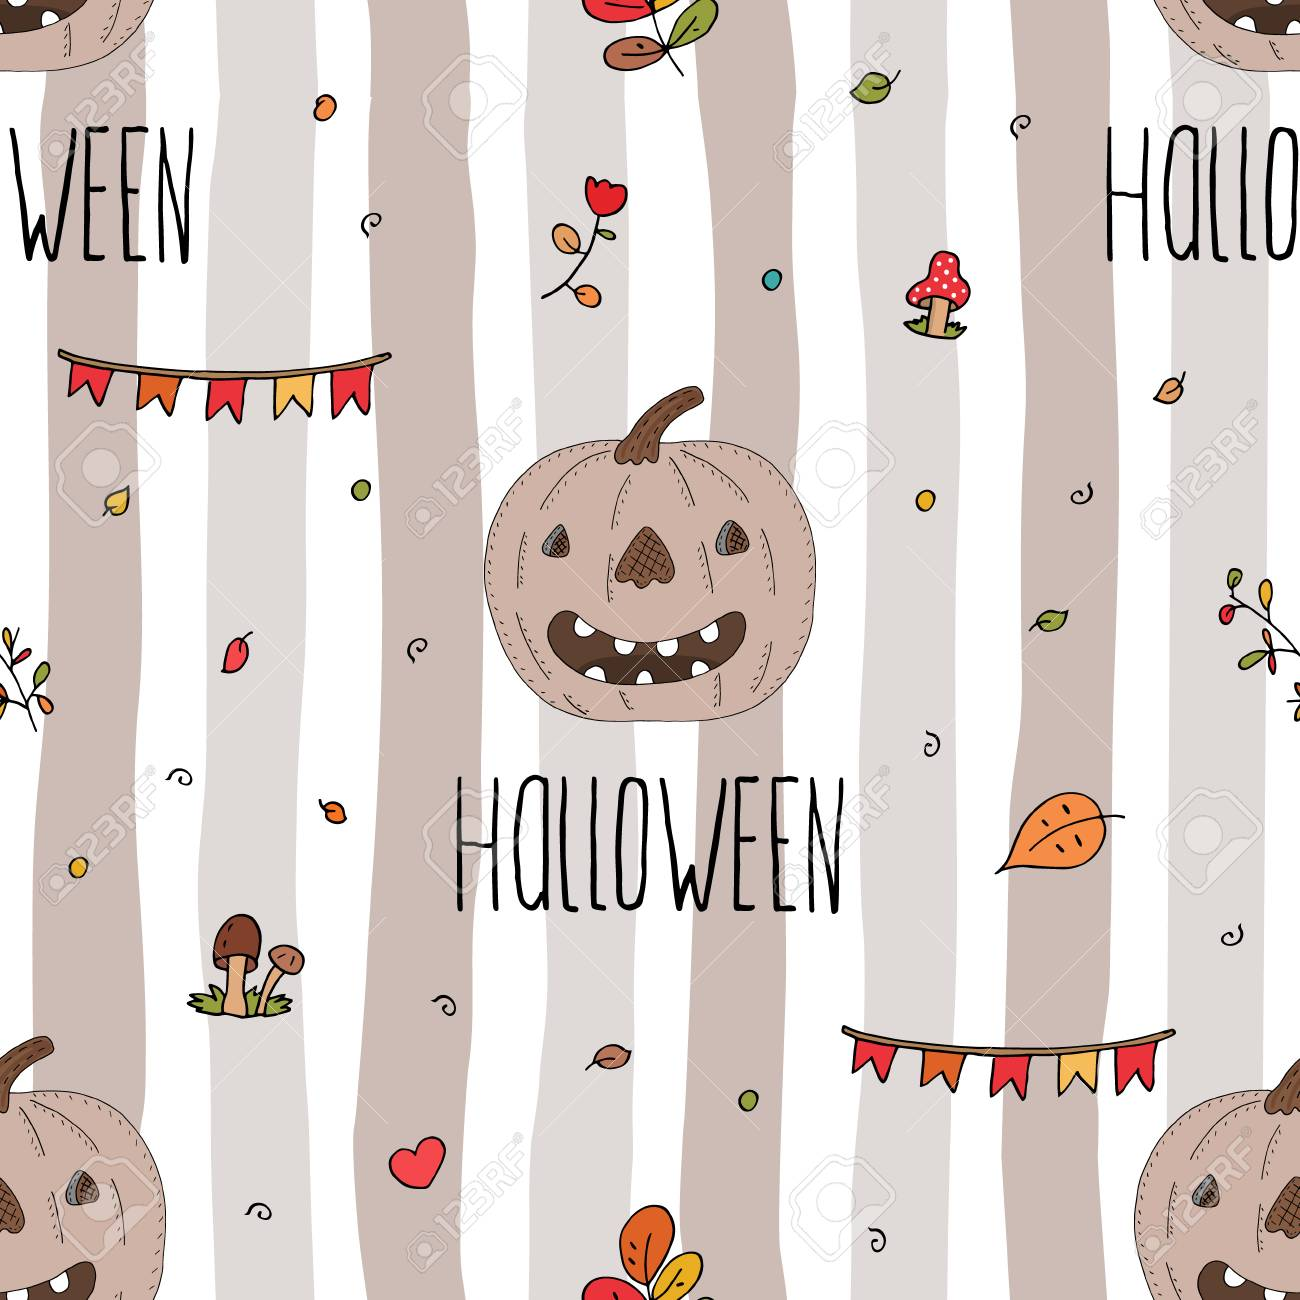 image regarding Pumpkin Printable Templates called Satisfied Halloween print with pumpkin. Printable templates.